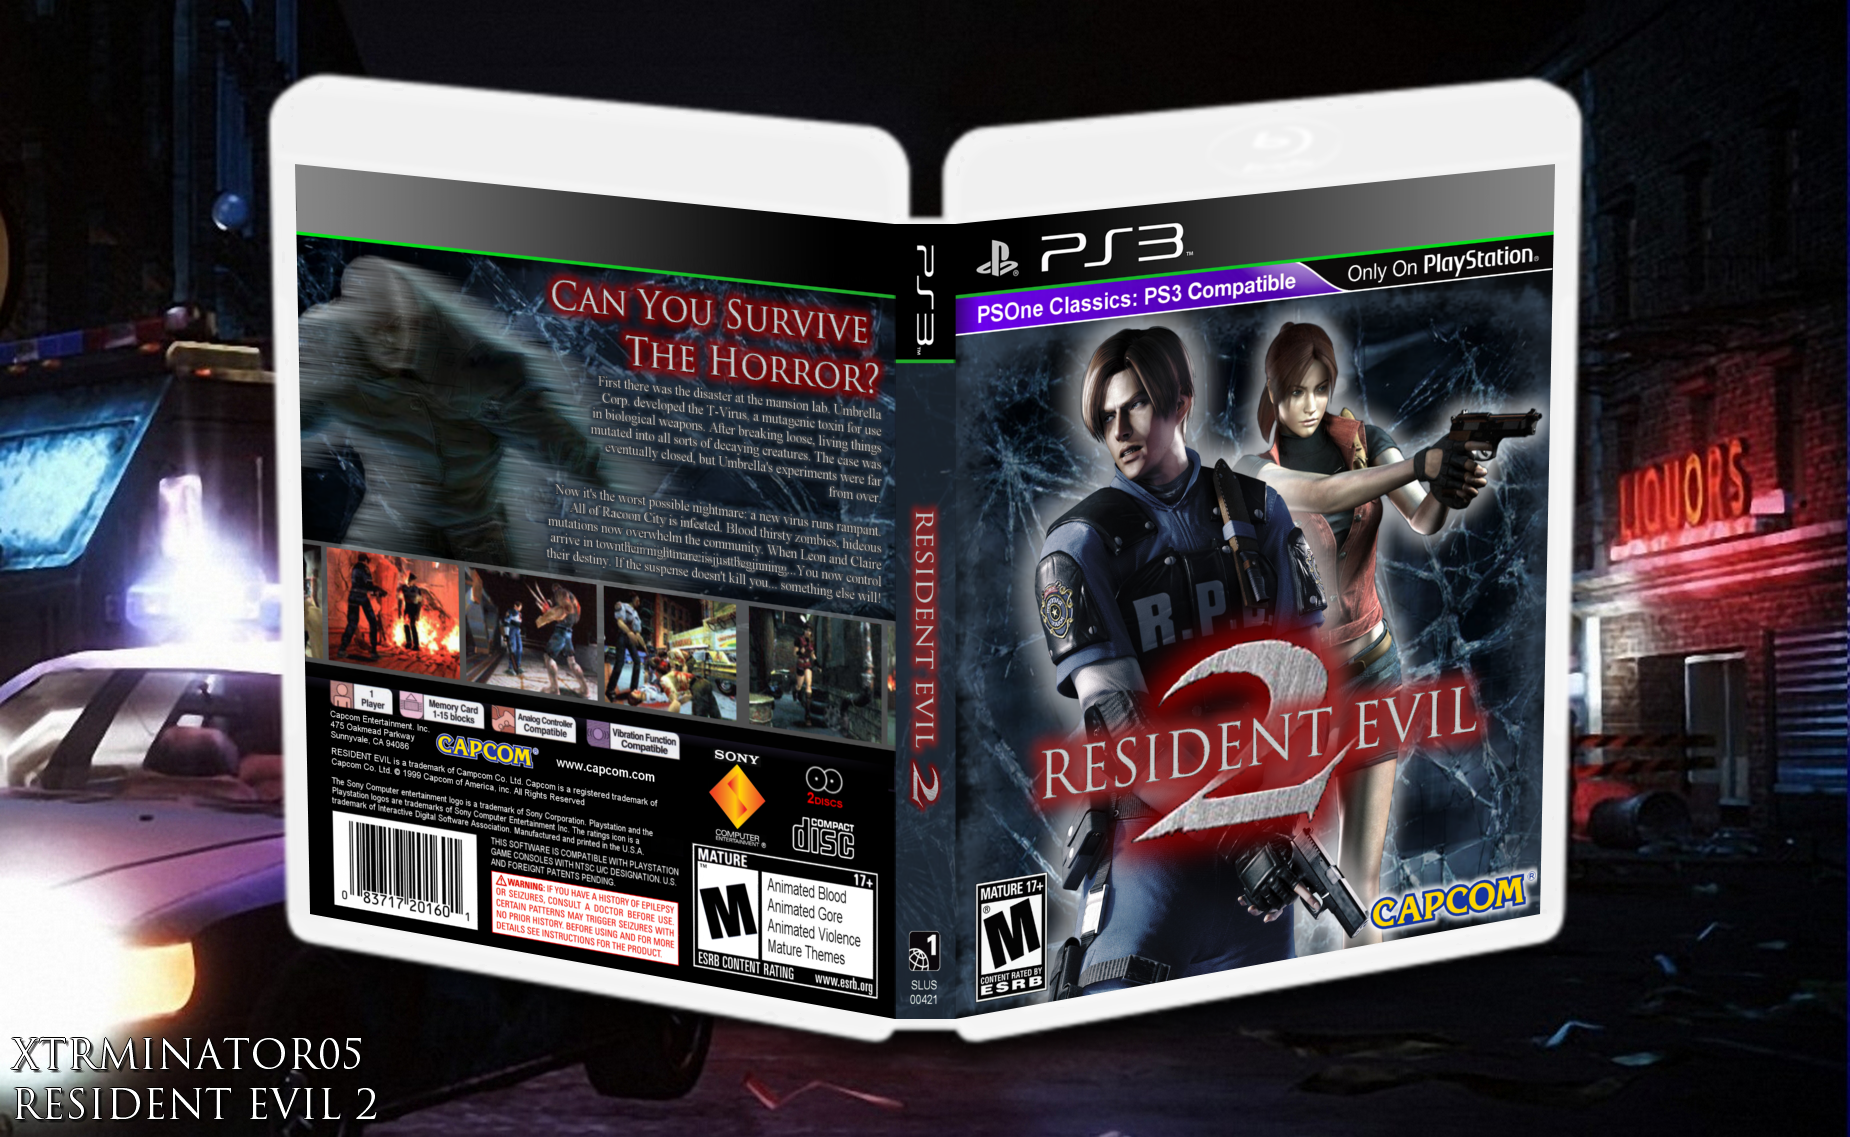 Viewing full size Resident Evil 2 box cover